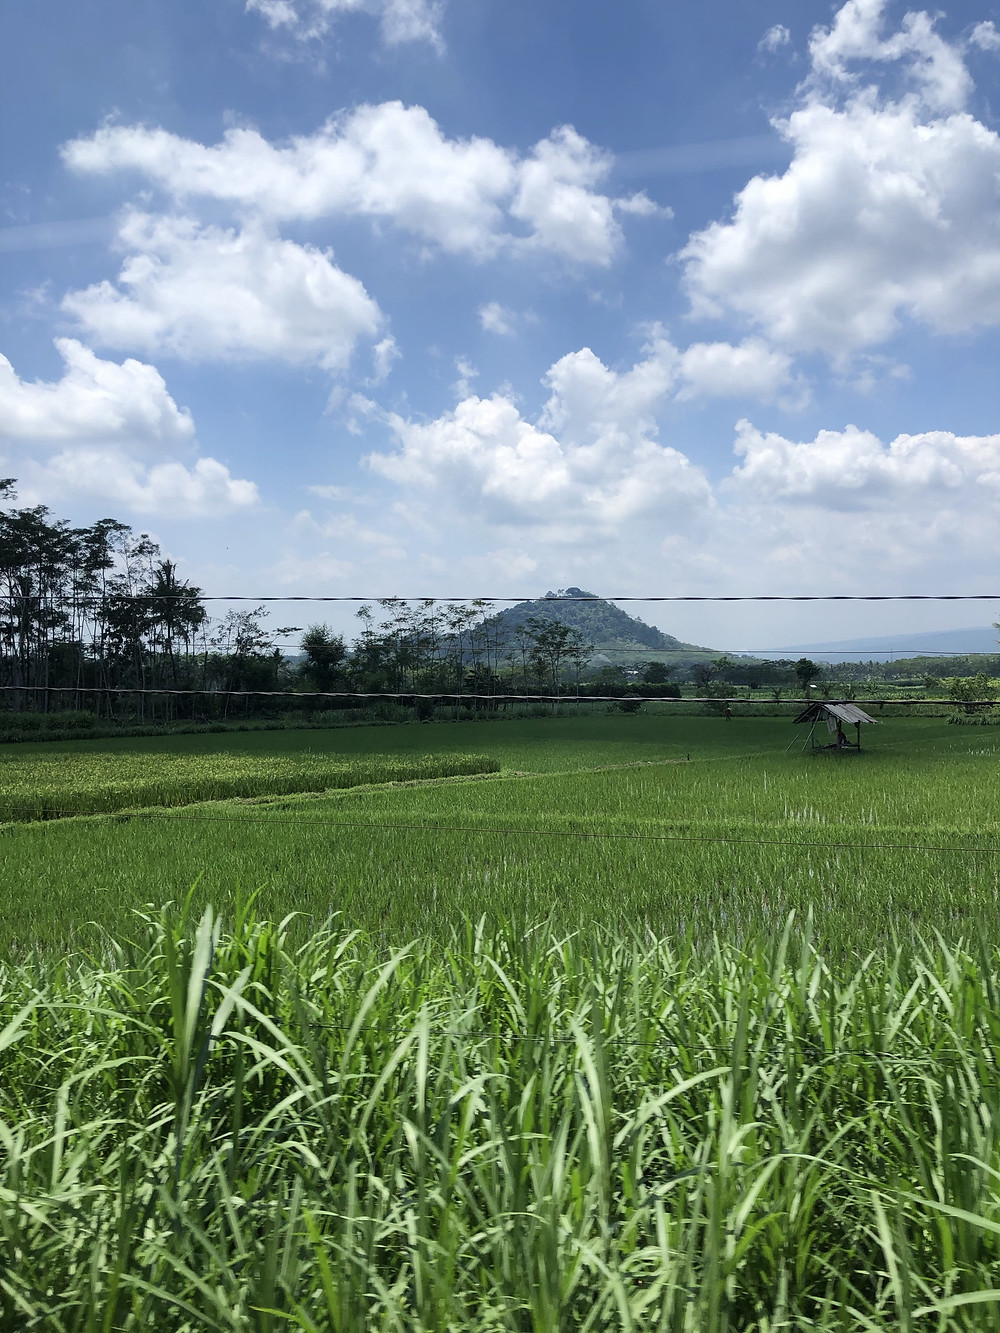 View from train window of rice fields on Java, Indonesia